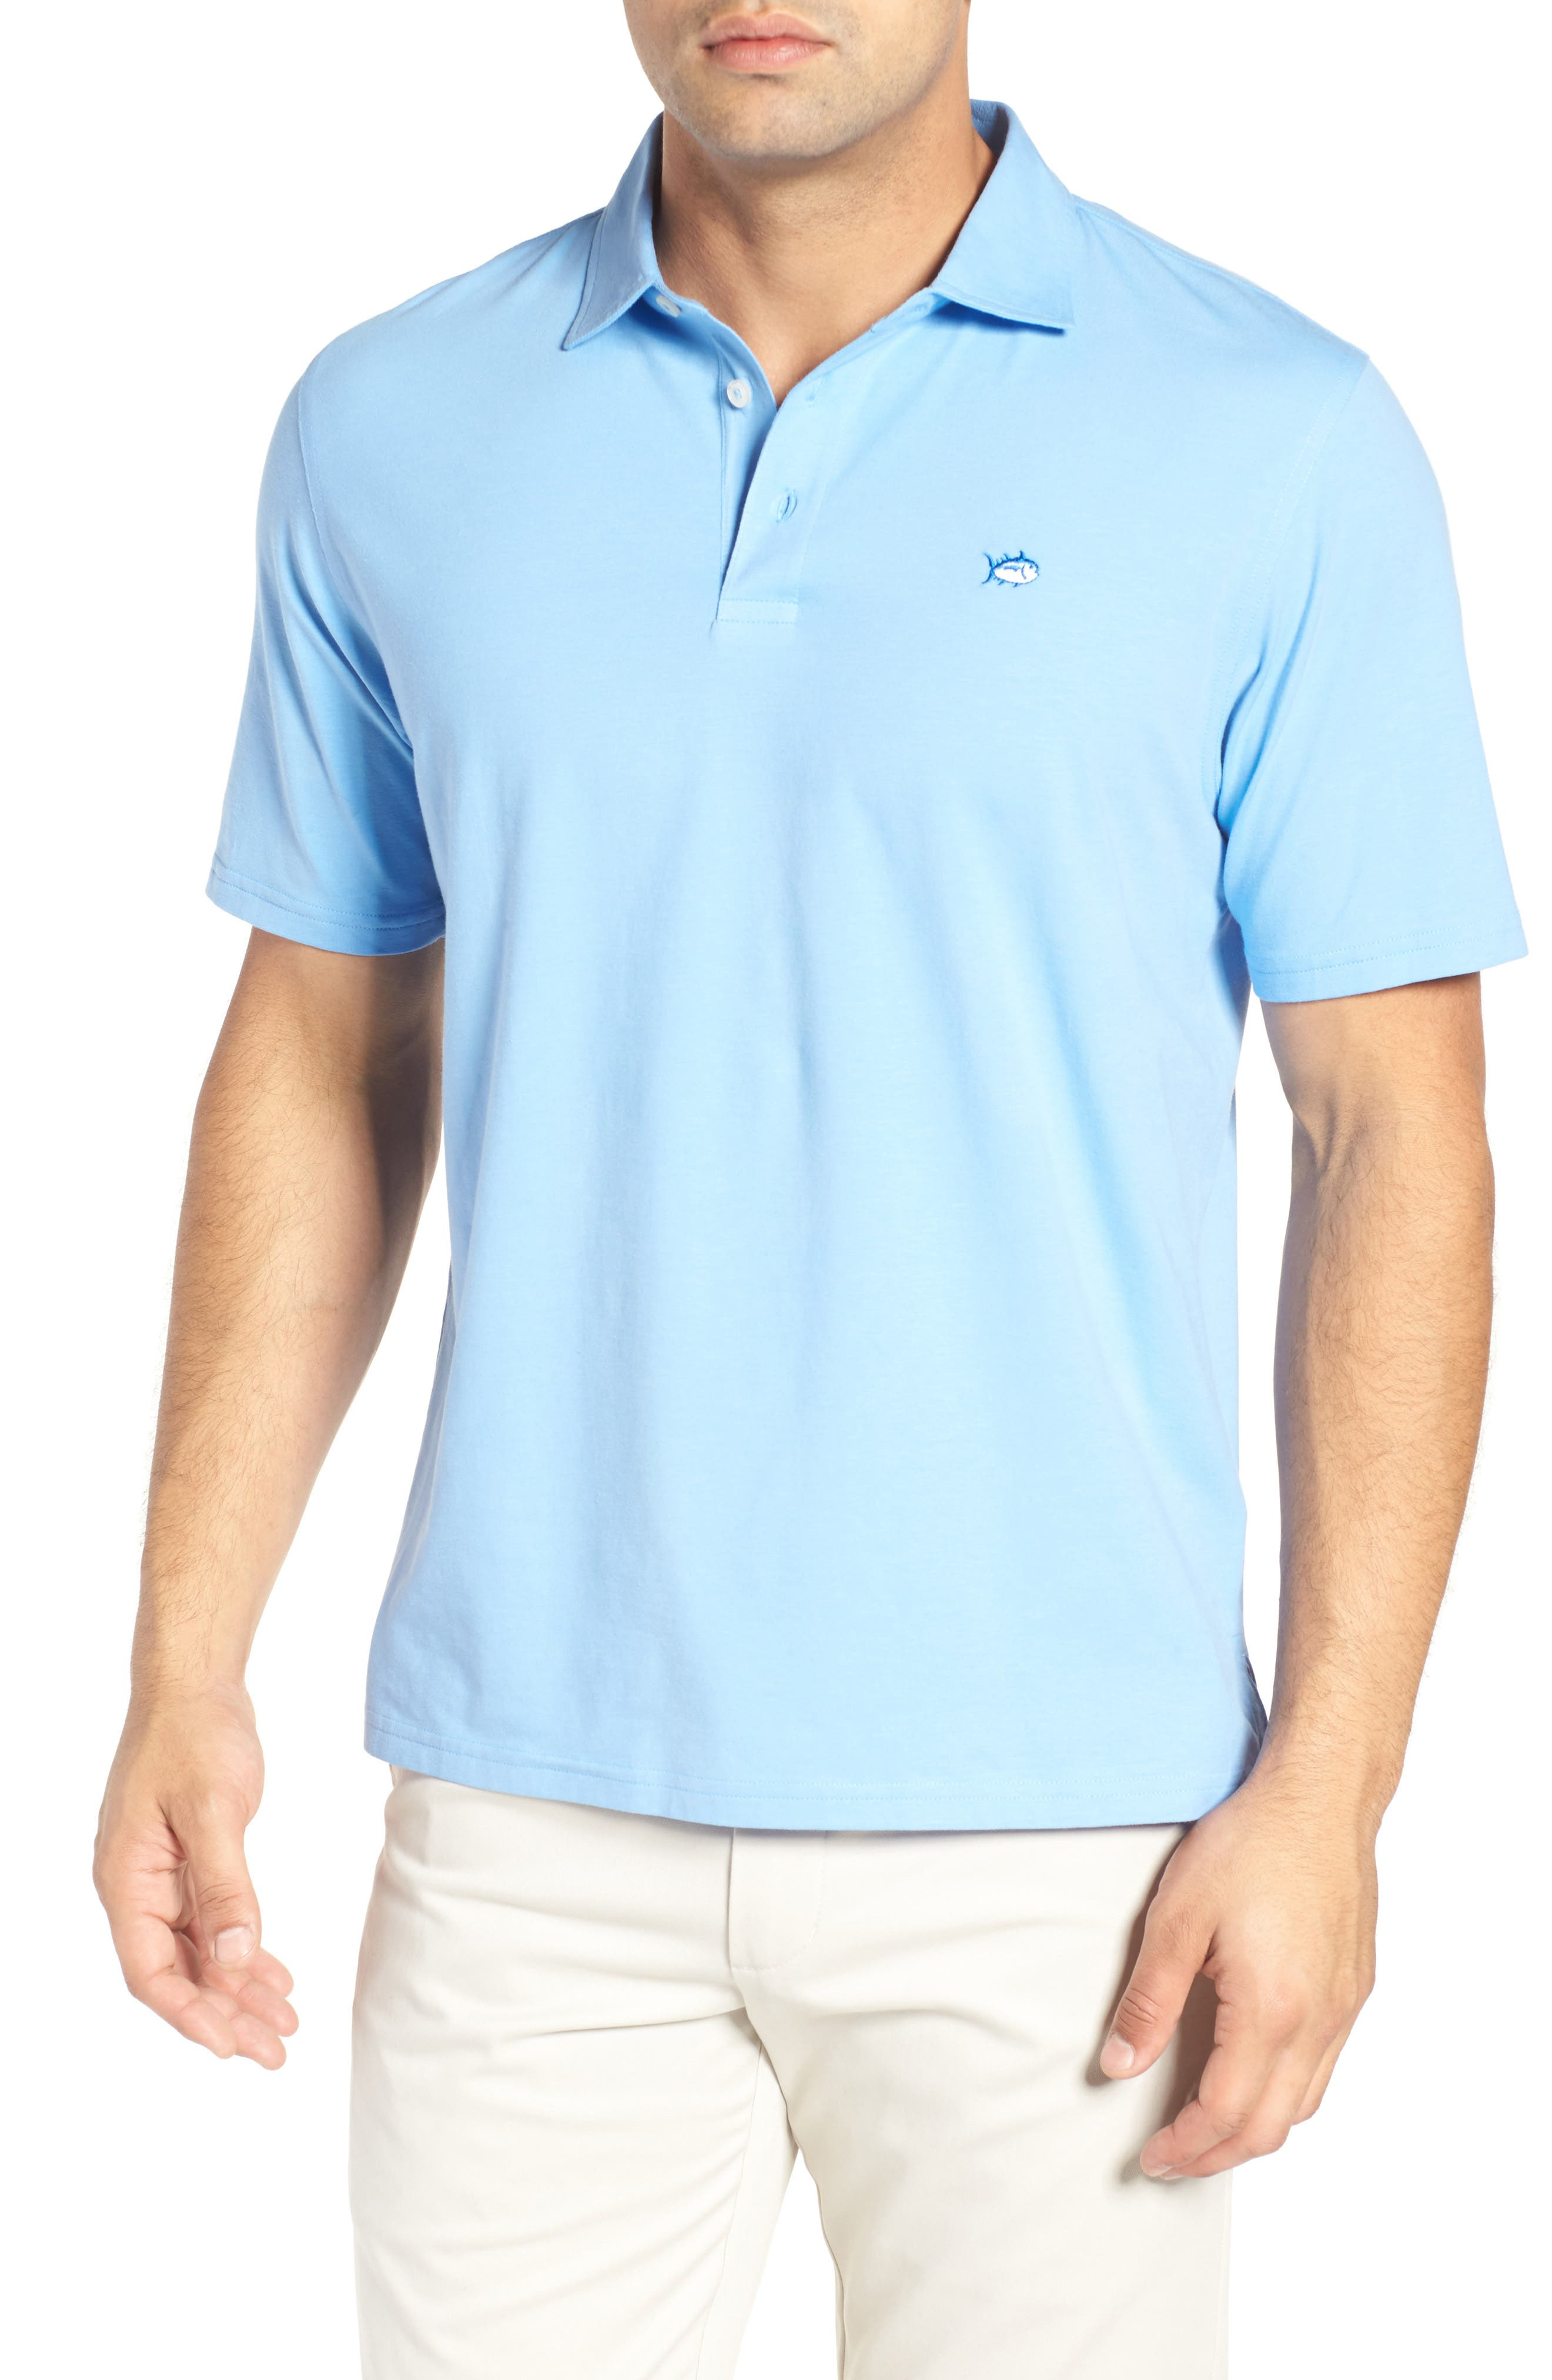 Southern Tide Channel Marker Jersey Polo